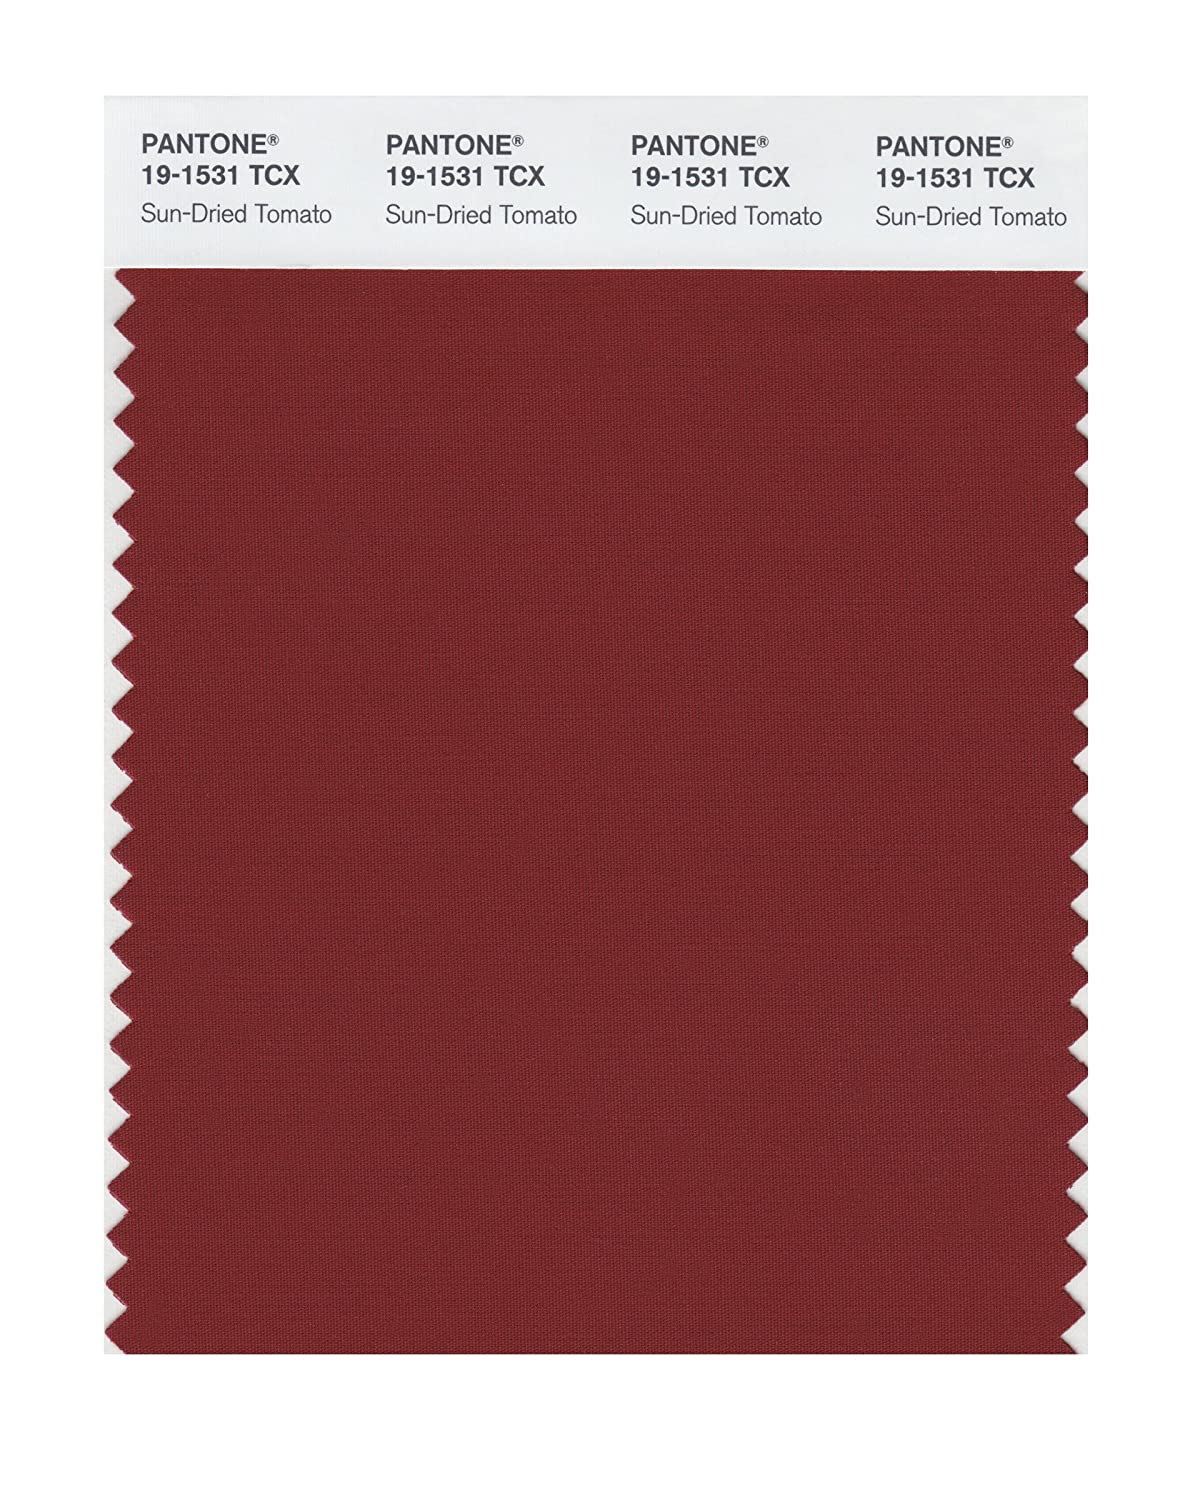 Pantone 19-1531 TCX Smart Color Swatch Card, Sun-Dried Tomato - House Paint  - Amazon.com